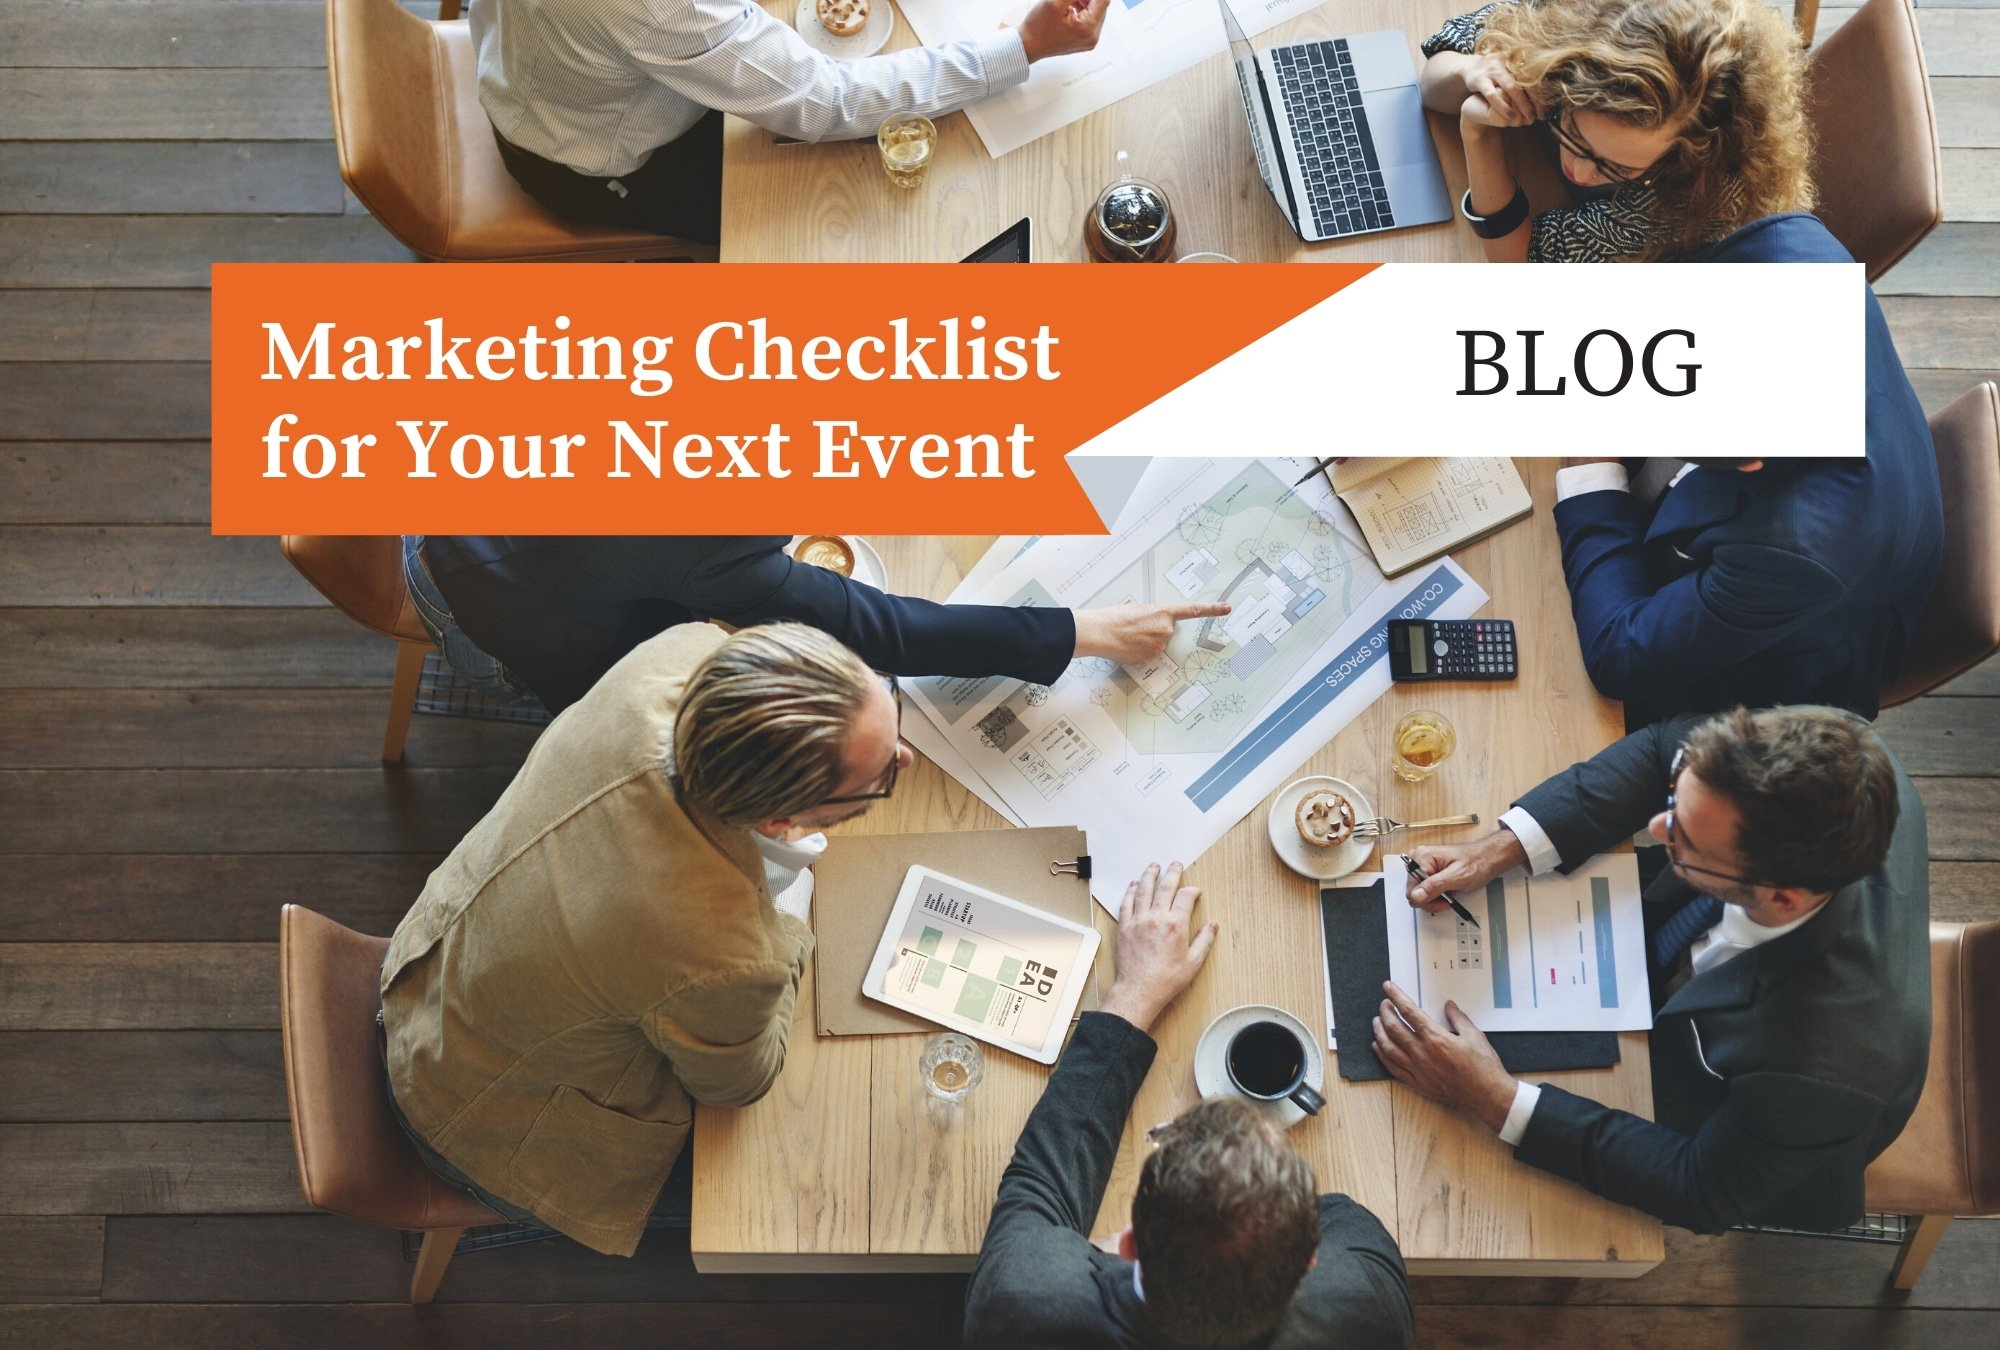 Marketing Checklist for Your Next Event